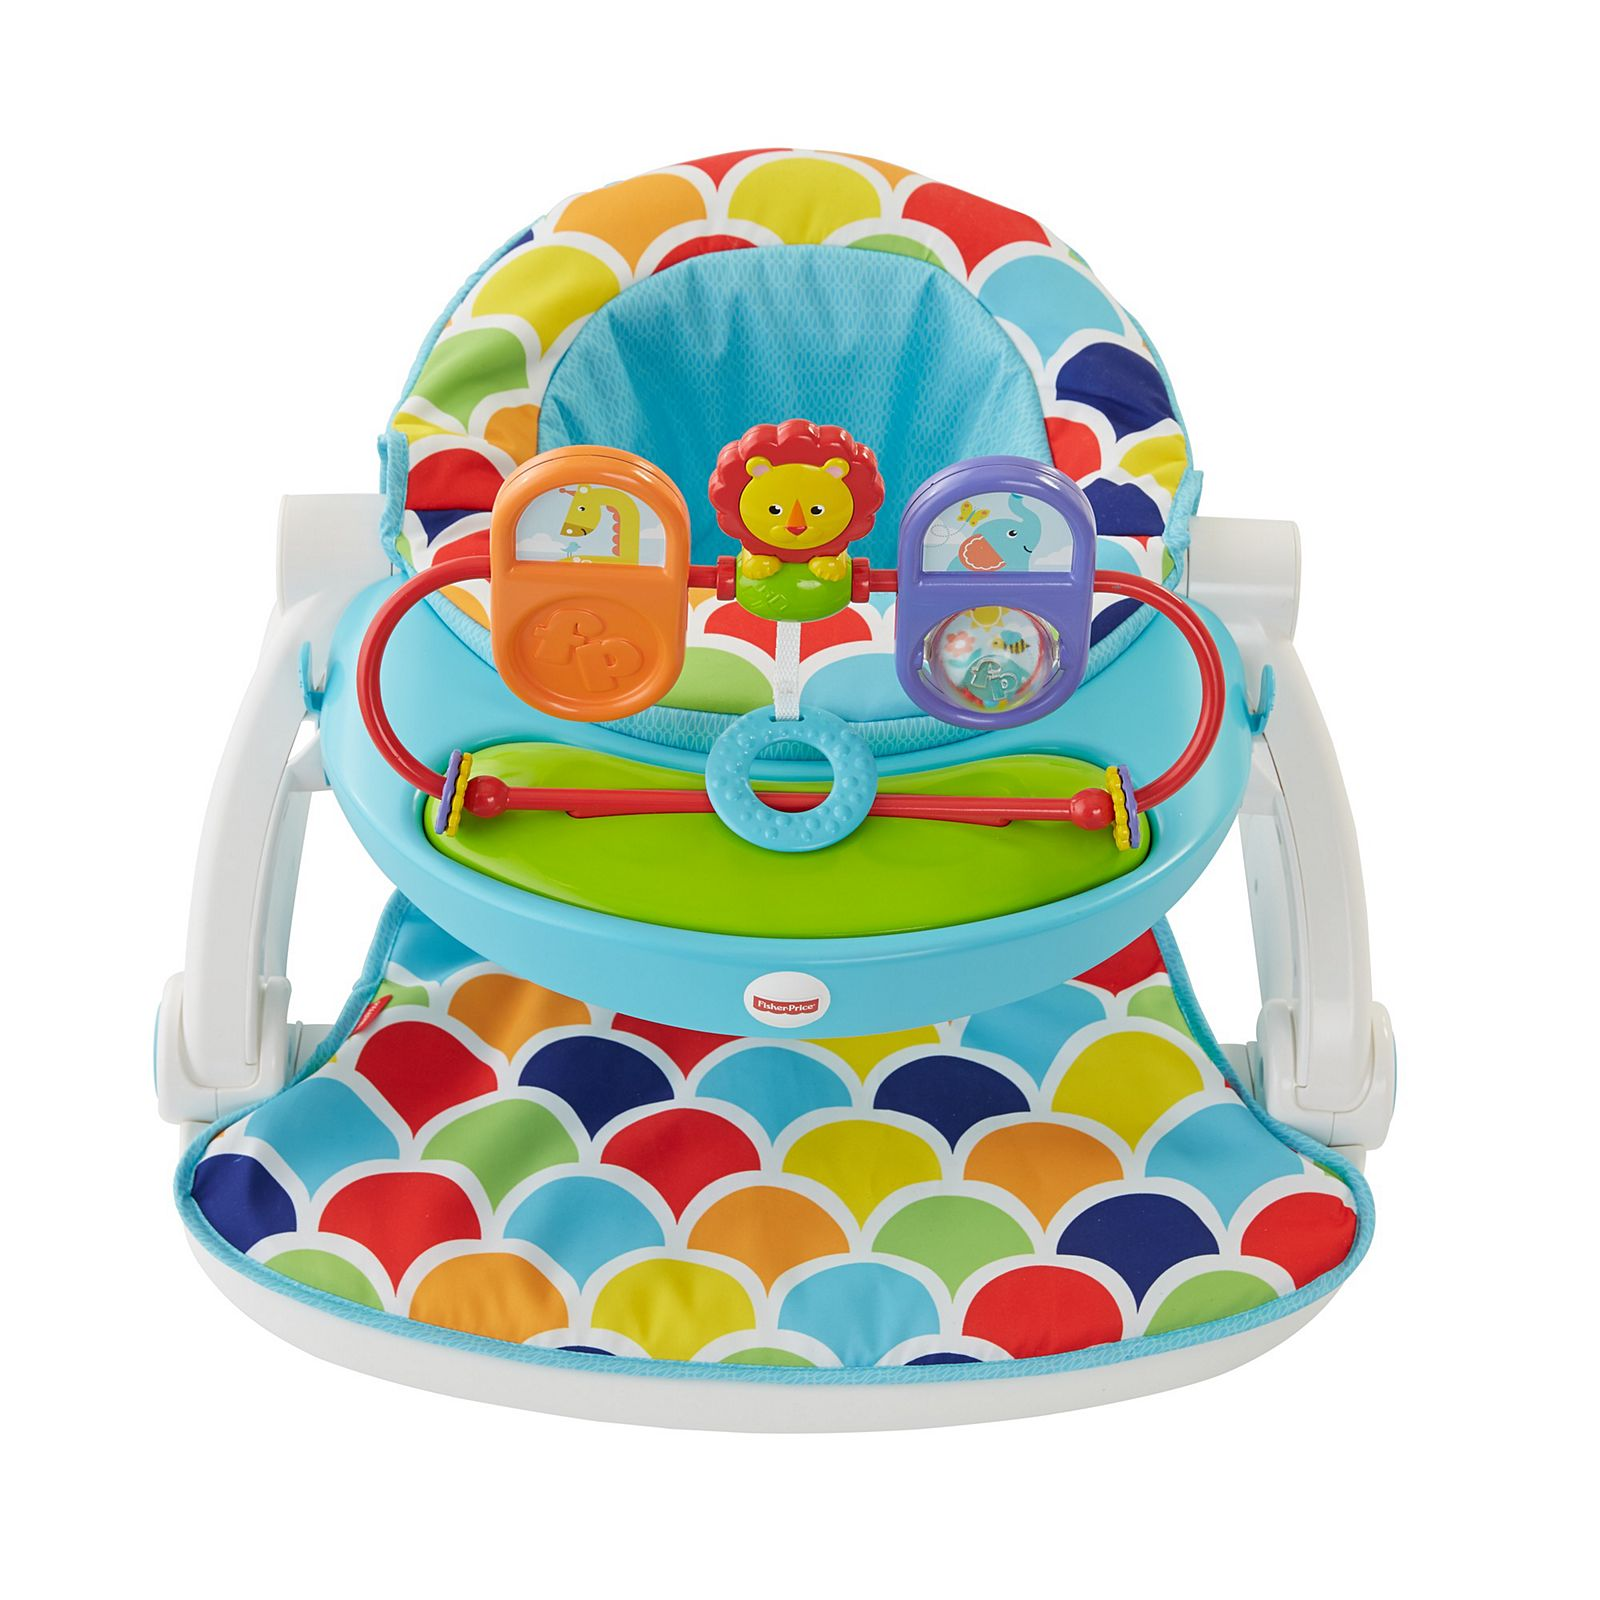 Sit Me Up Floor Seat With Toy Tray